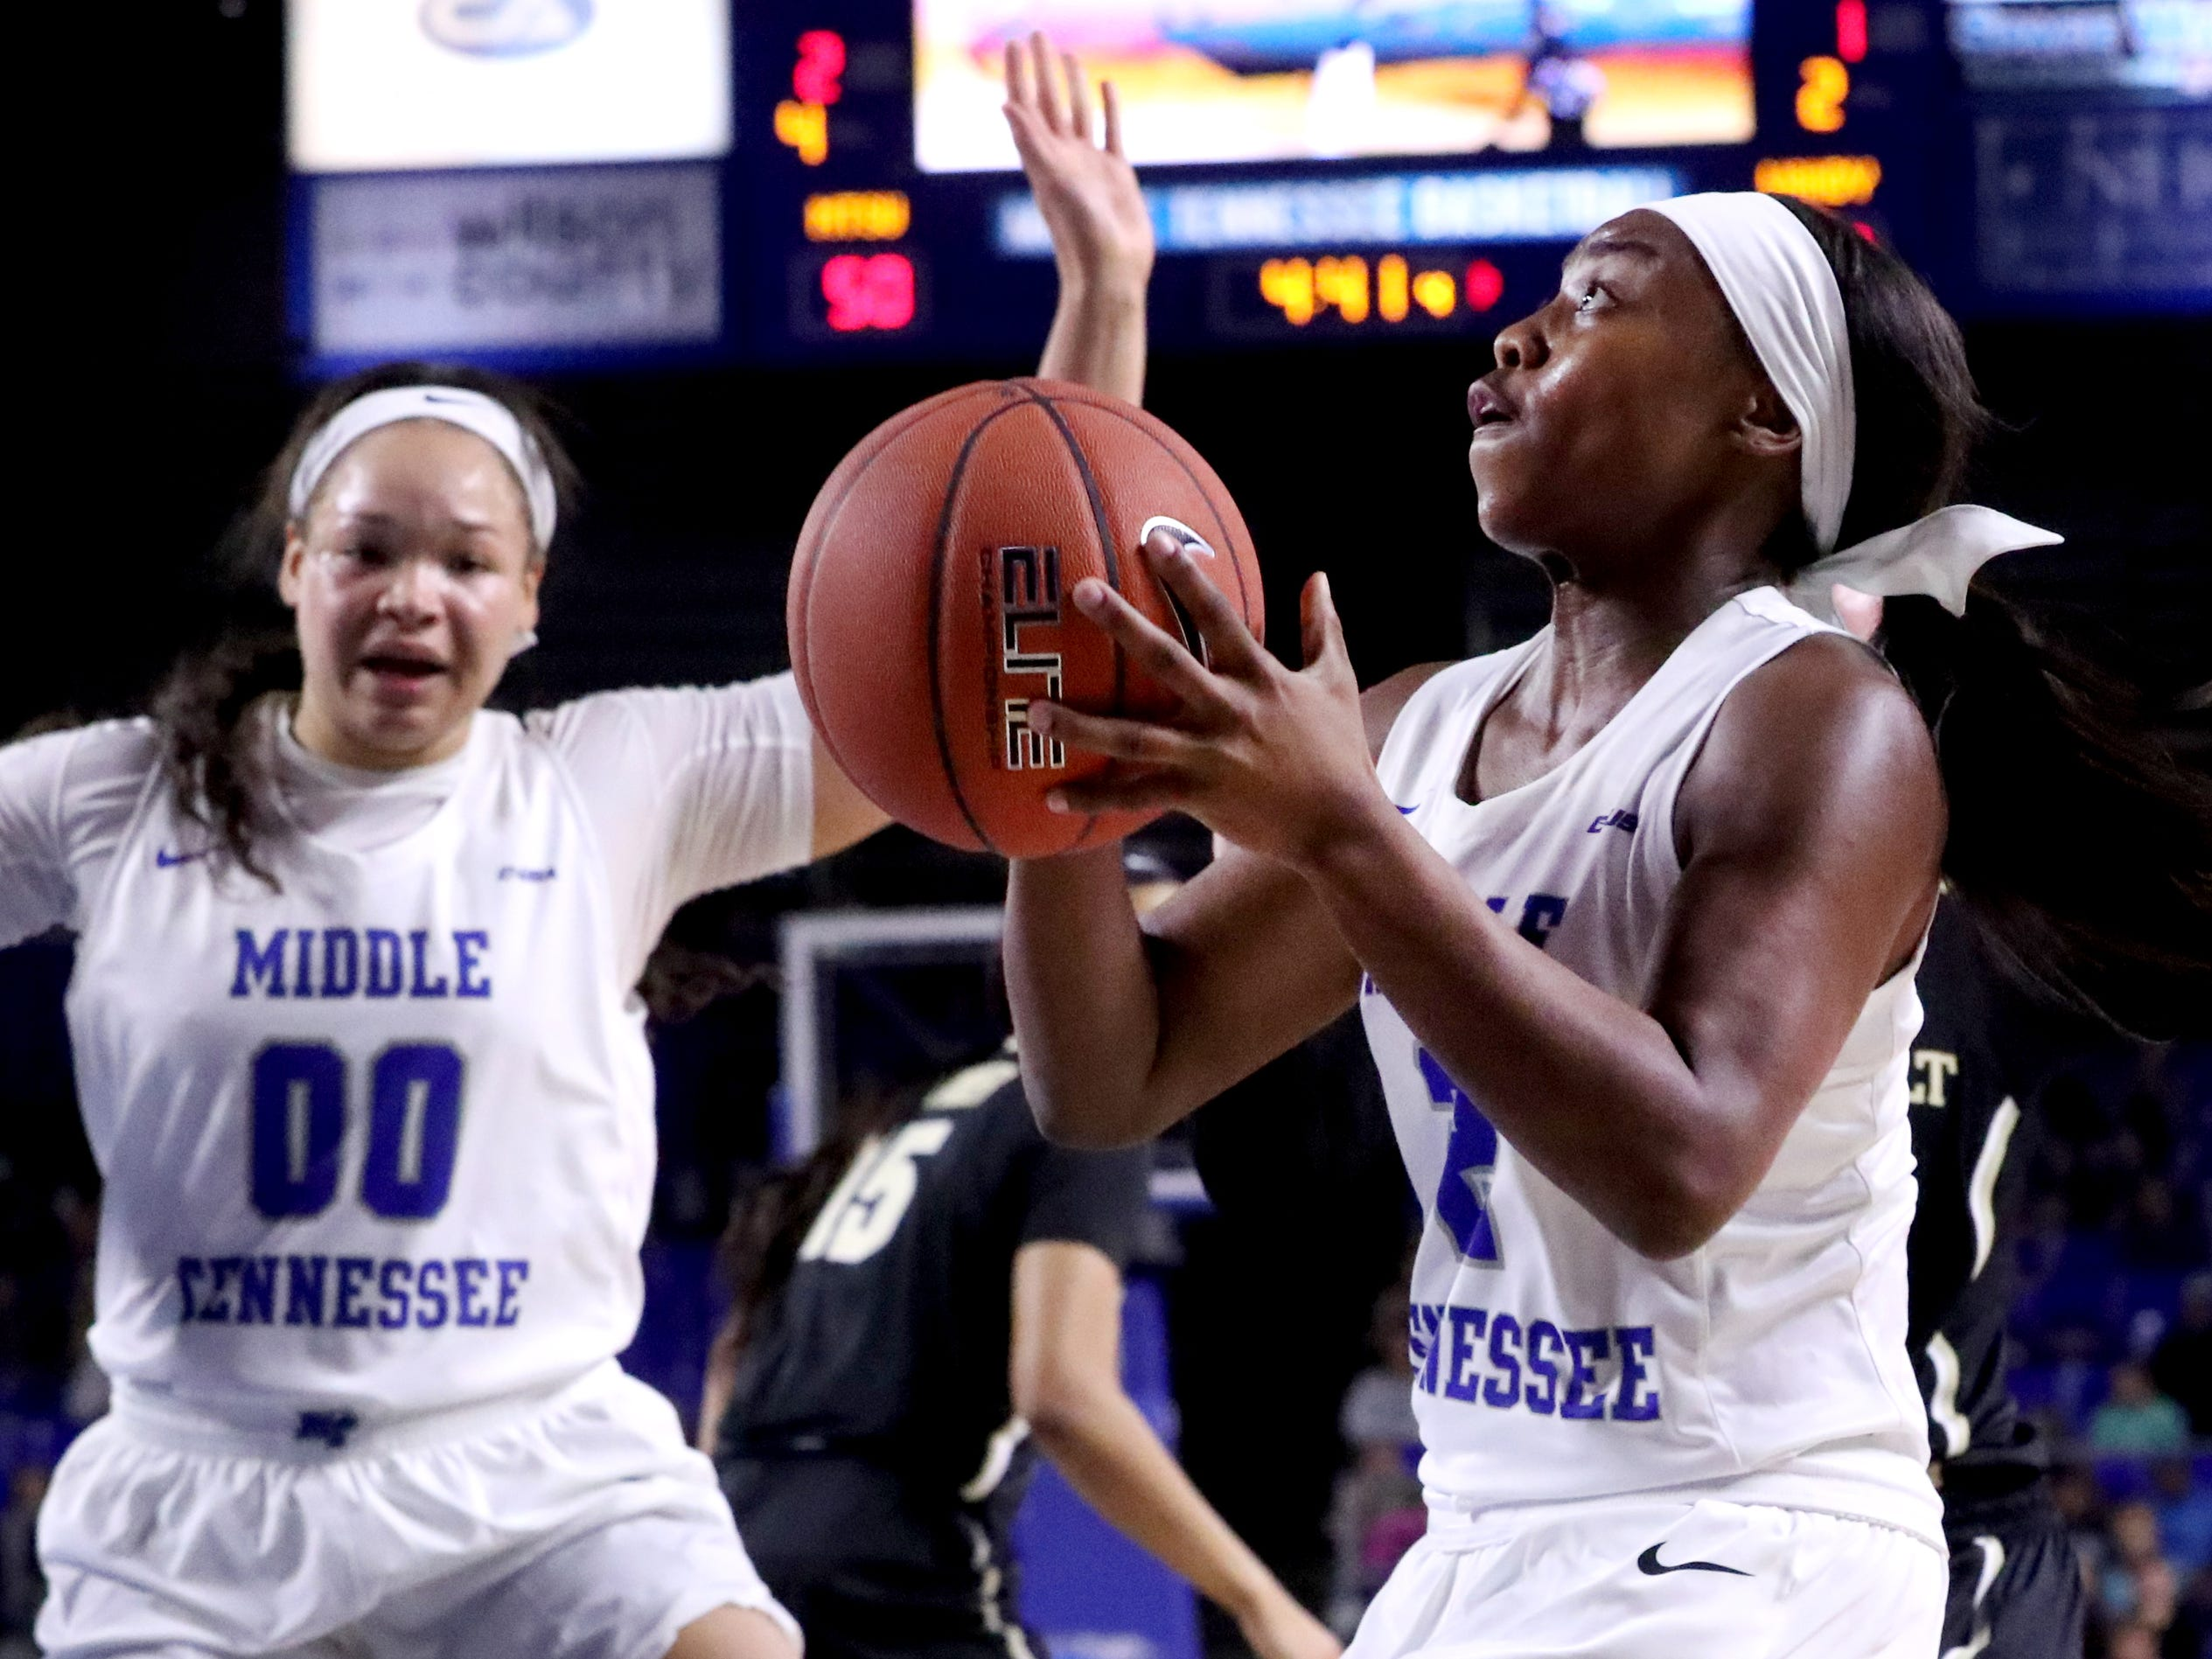 MTSU's Taylor Sutton (2) goes up for a shot during the game against Vanderbilt during MTSU women's home opening game at MTSU on Friday, Nov. 8, 2018.